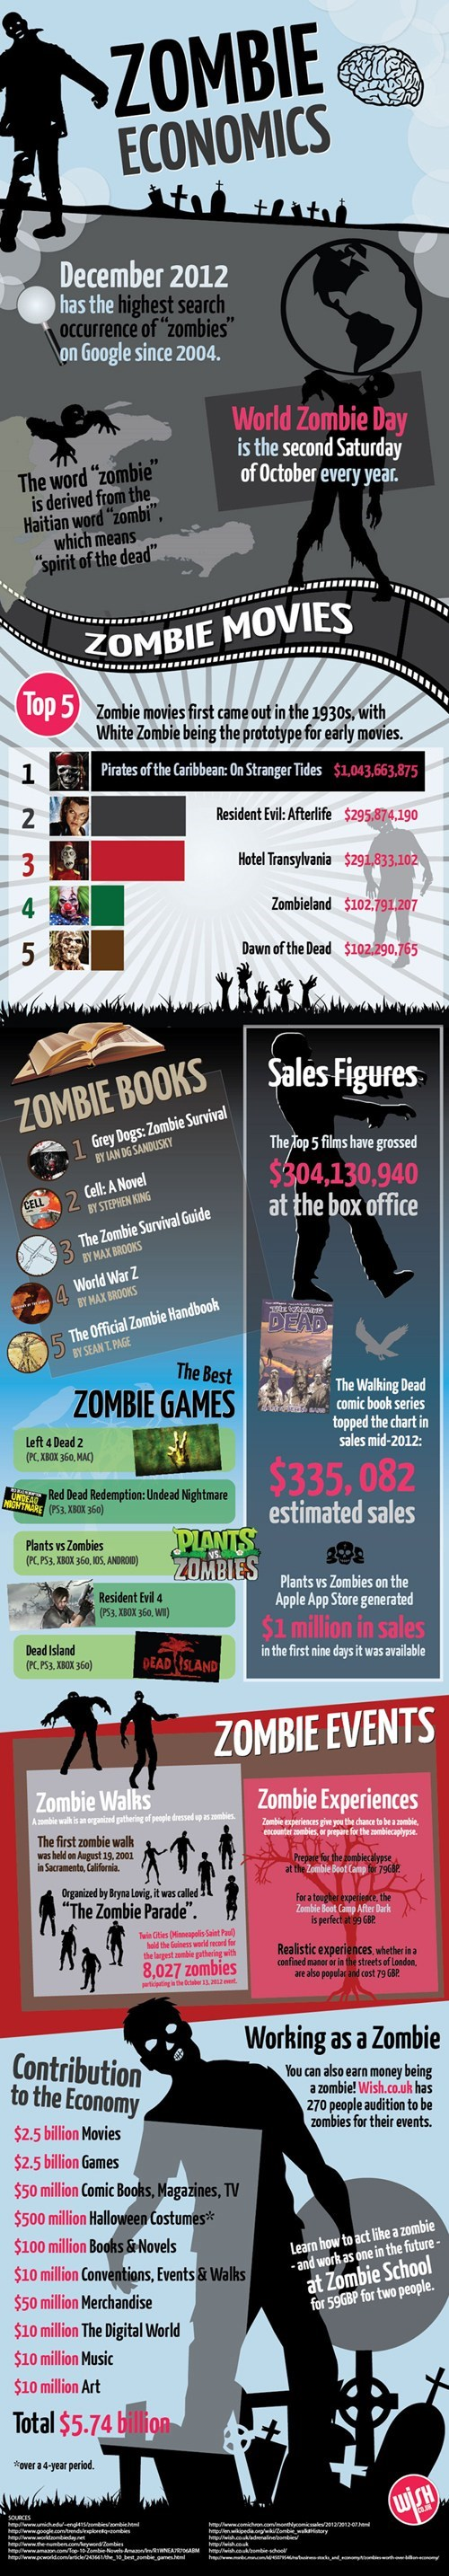 infographic,Economics,money,zombie